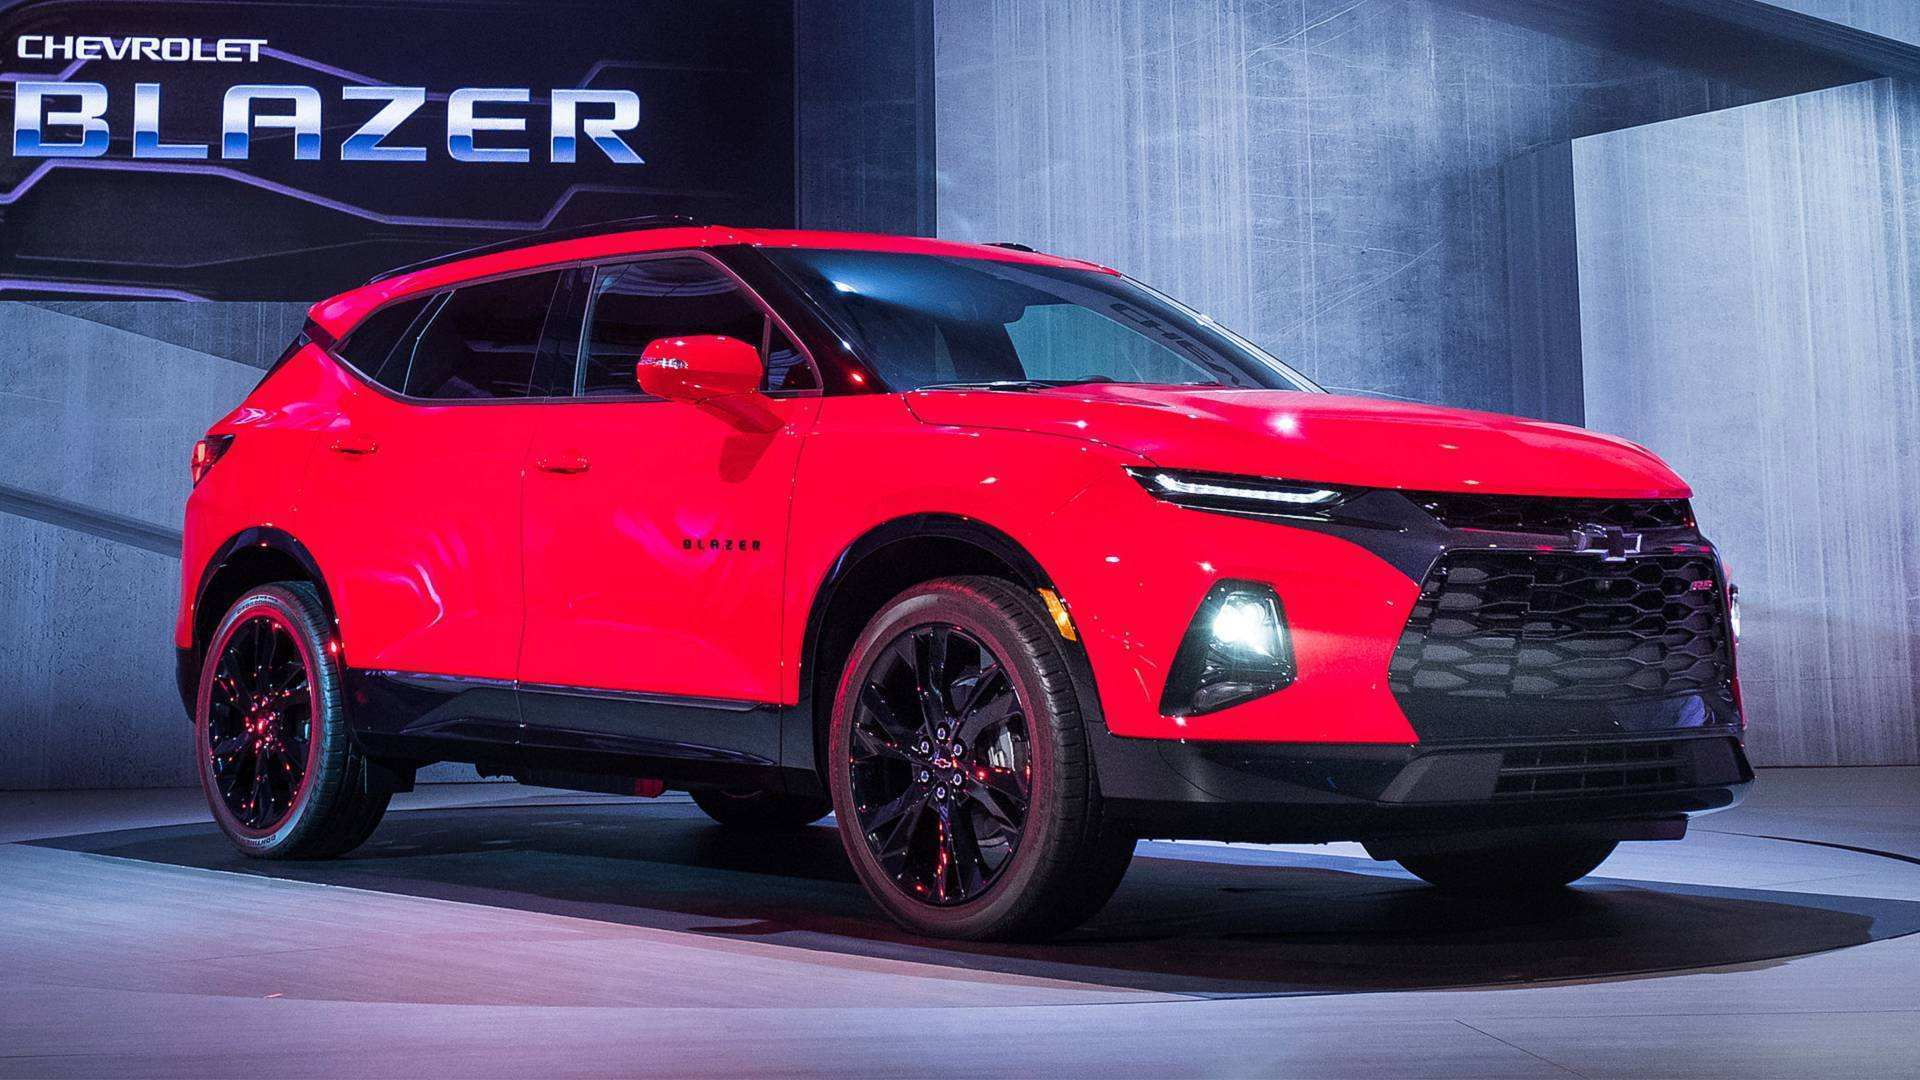 55 Best 2020 Chevy Blazer Price